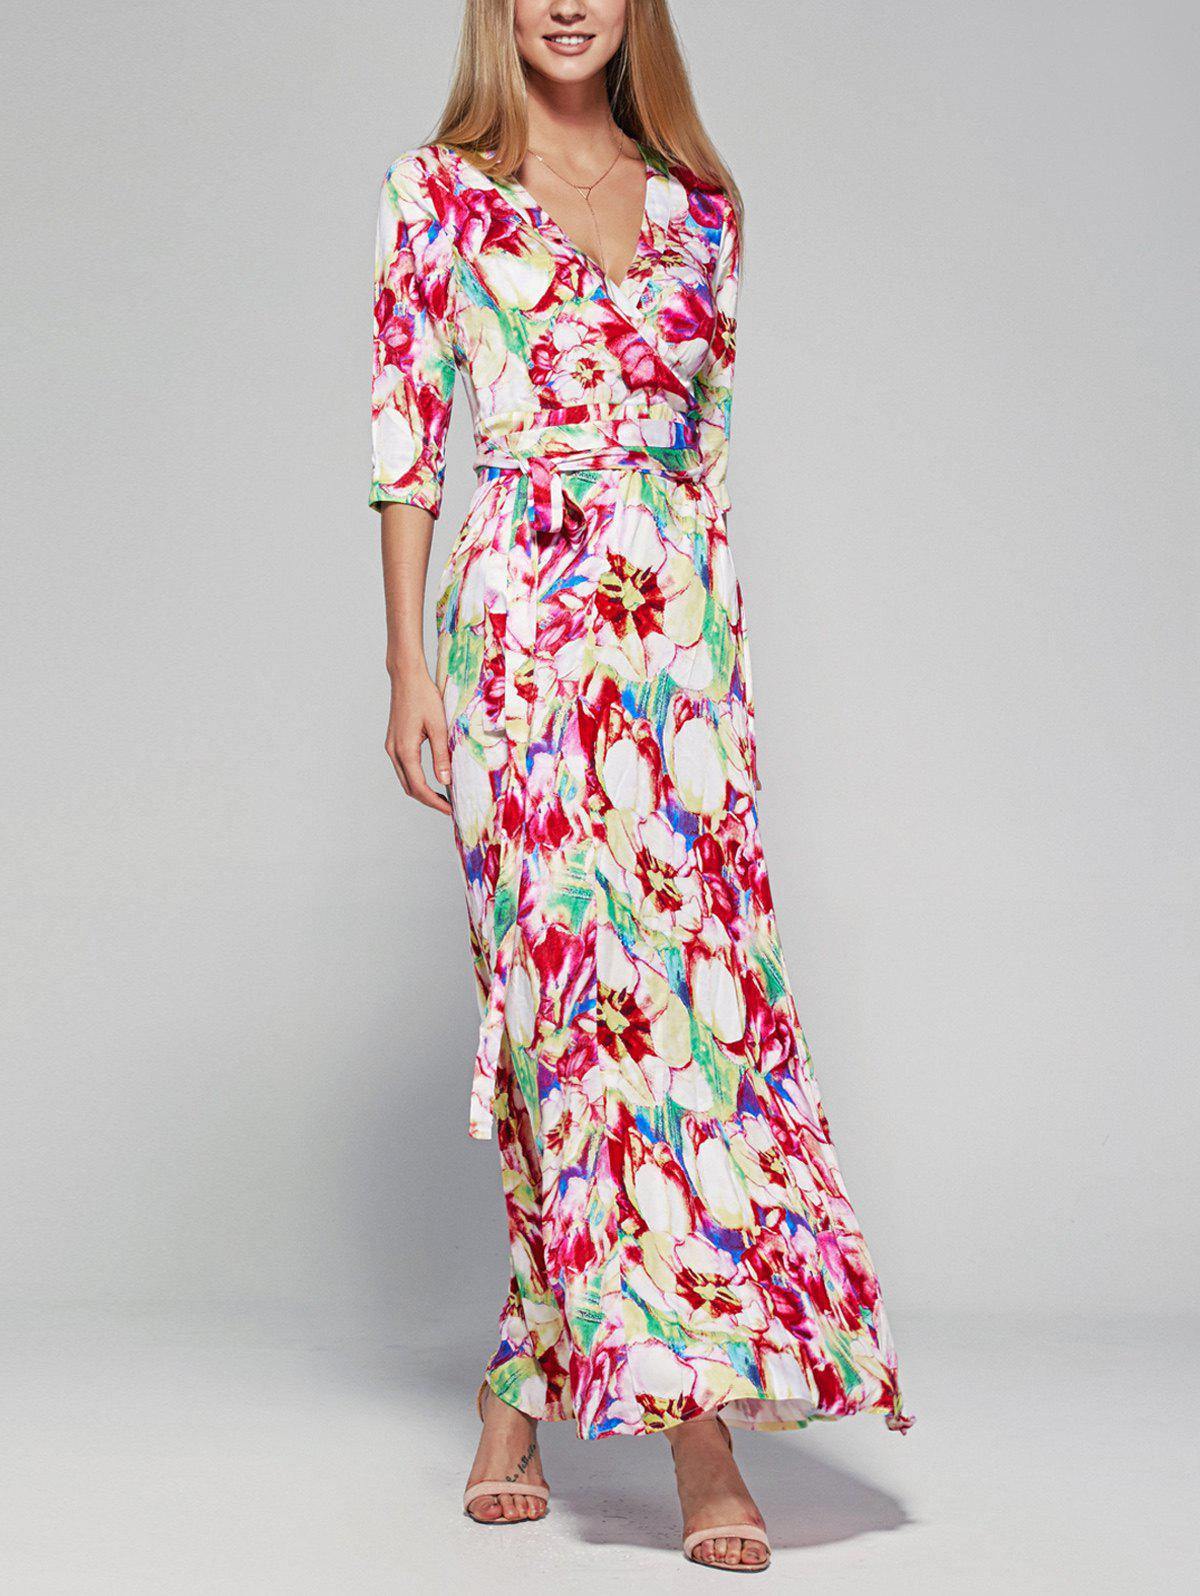 3/4 Sleeve Plunging Neck Floral Women's Wrap Dress